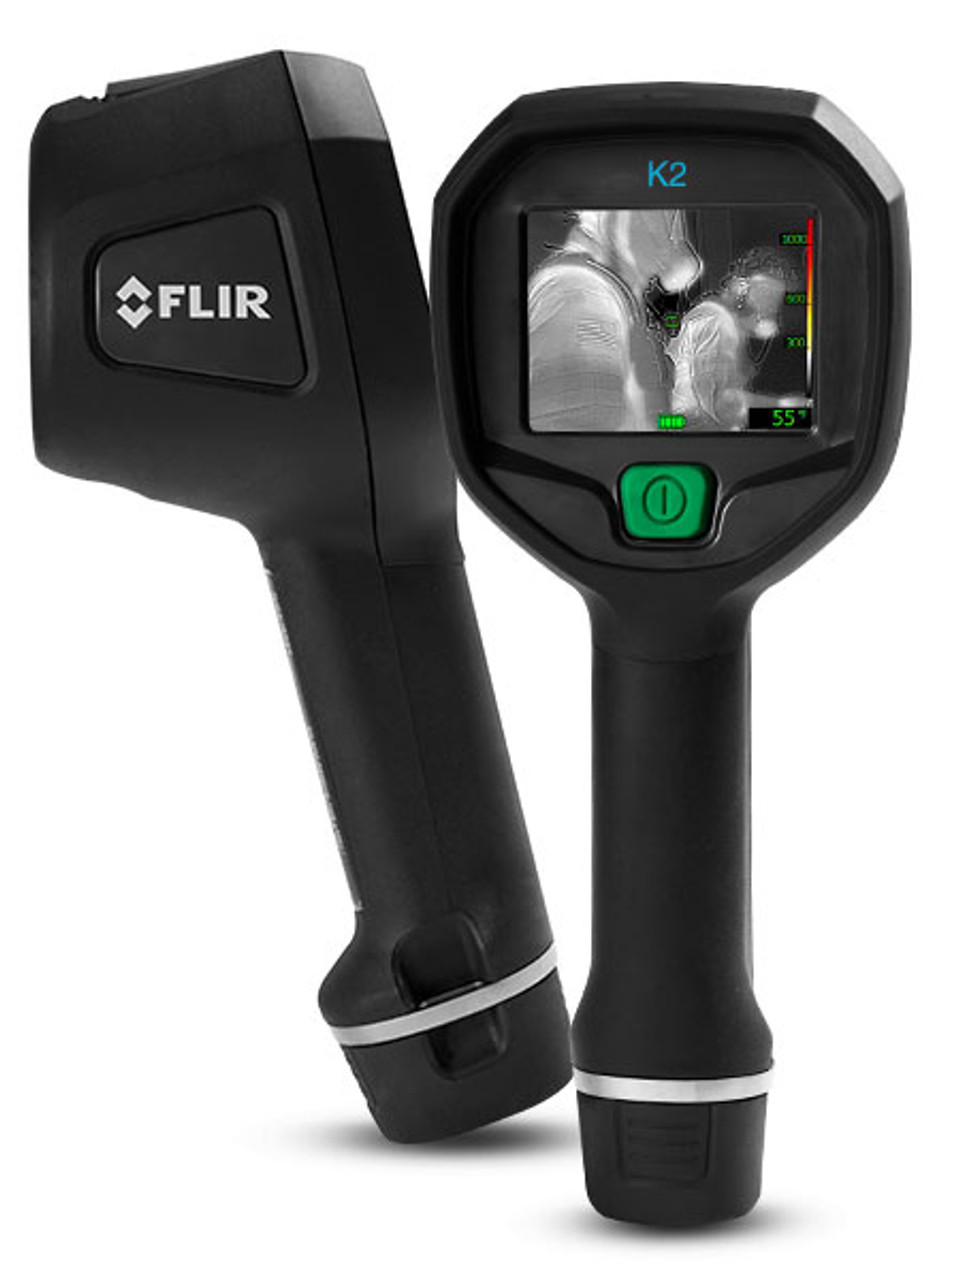 Flir K2 Fire Protection Thermal Imager